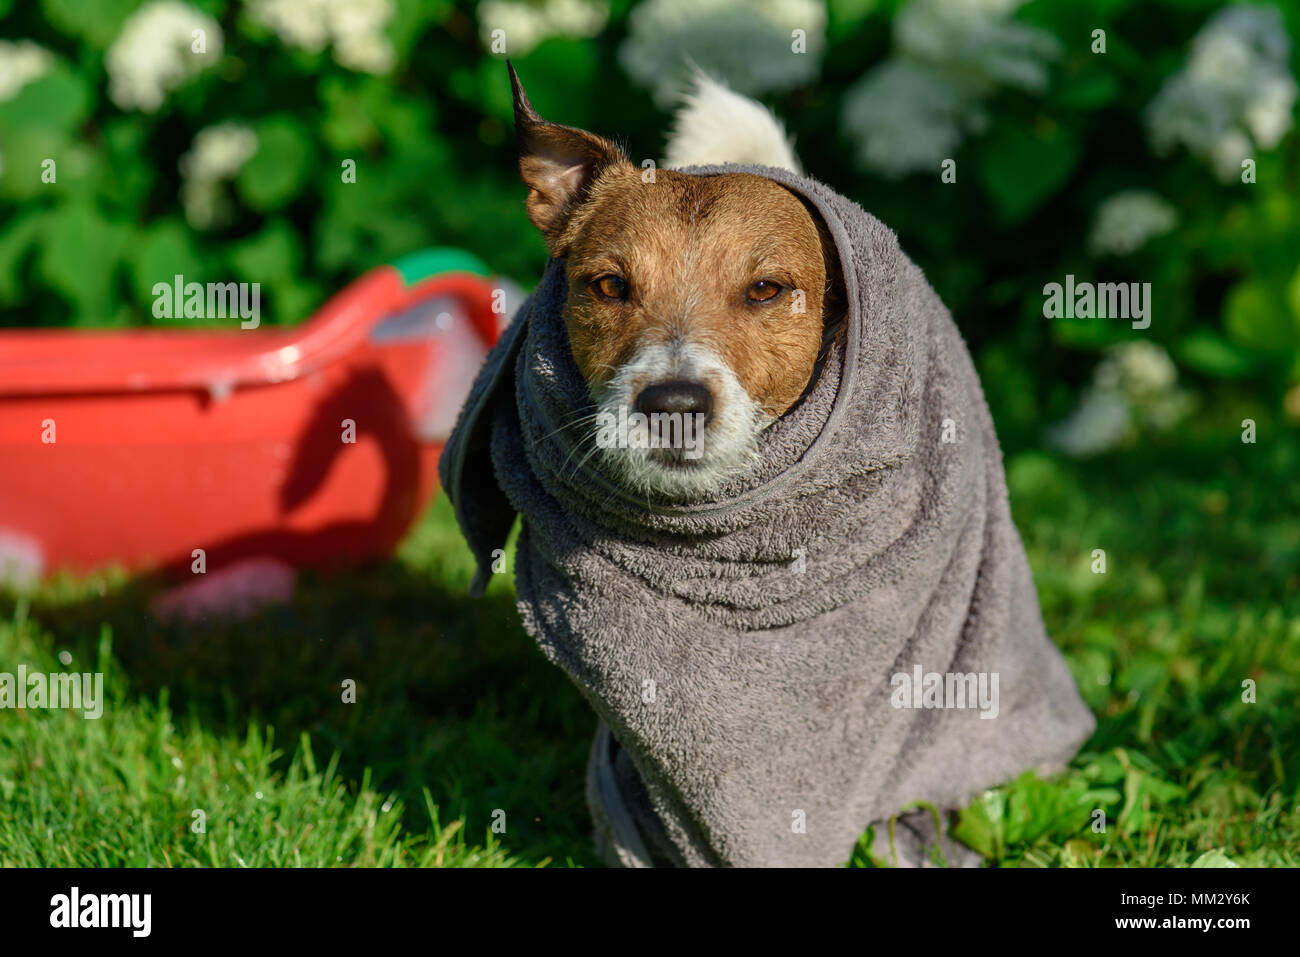 Dog wrapped up in grey towel after shower cooling down at hot summer day - Stock Image